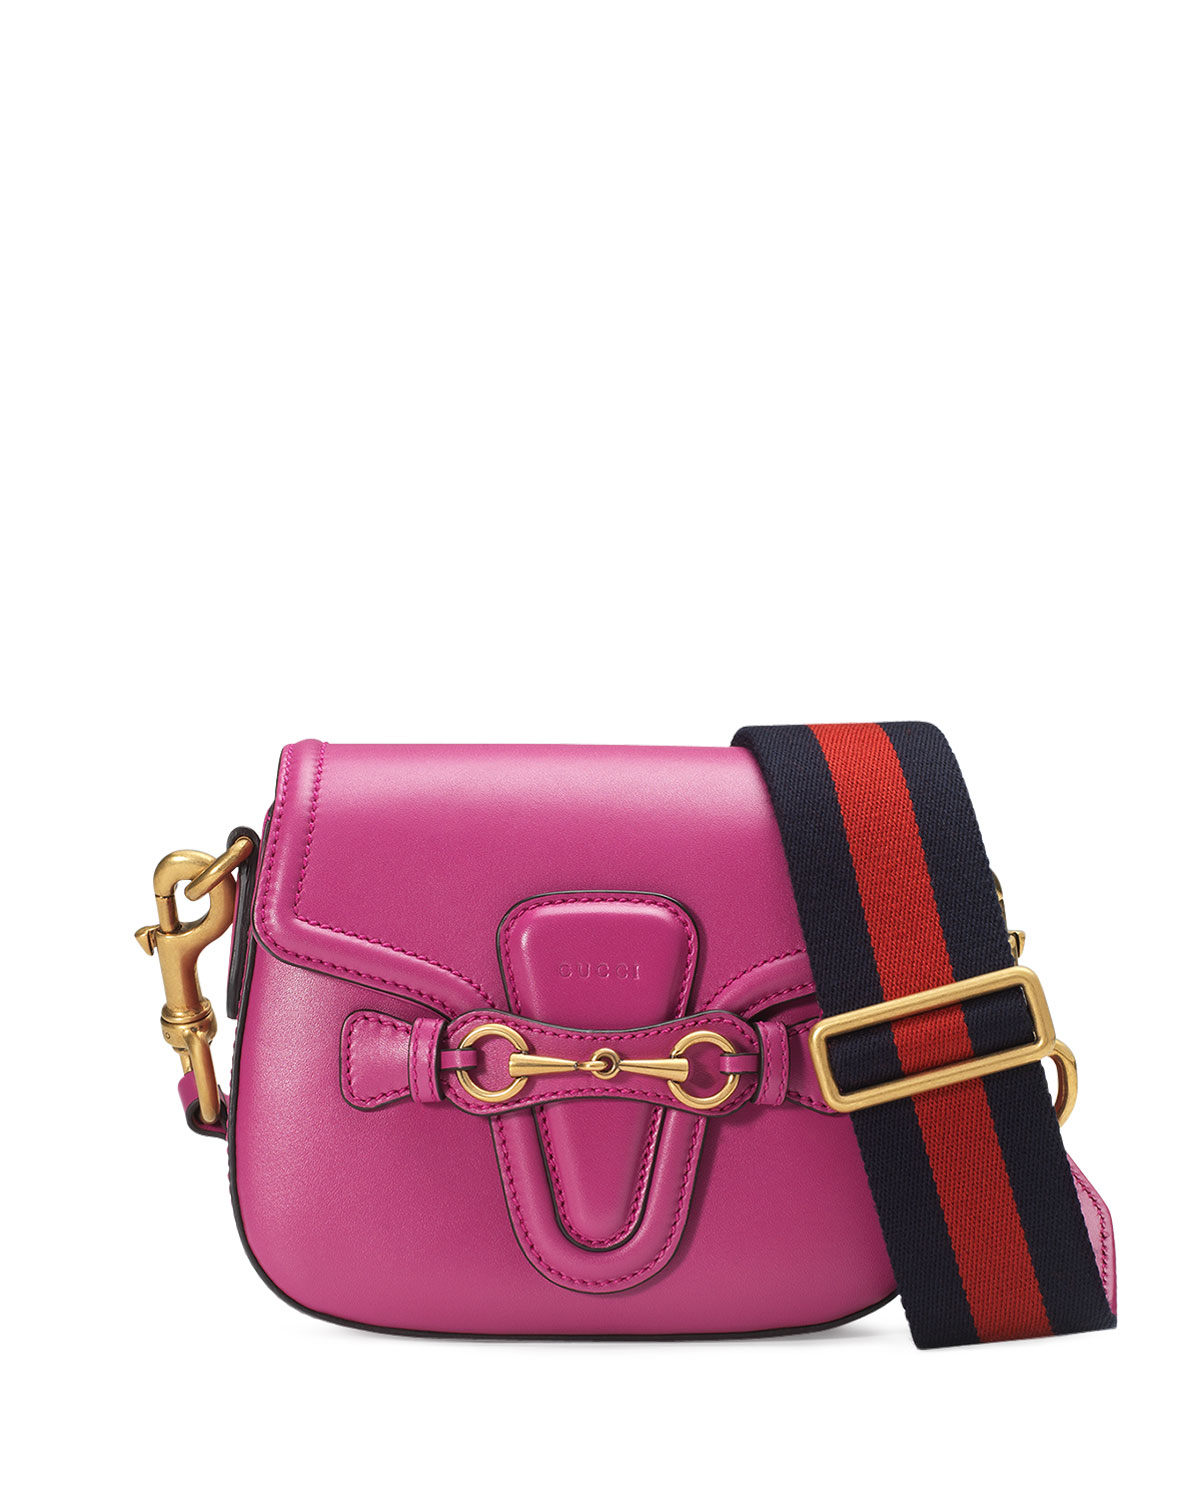 5923eaedb111 Gucci Lady Web Small Leather Crossbody Bag, Pink | Neiman Marcus